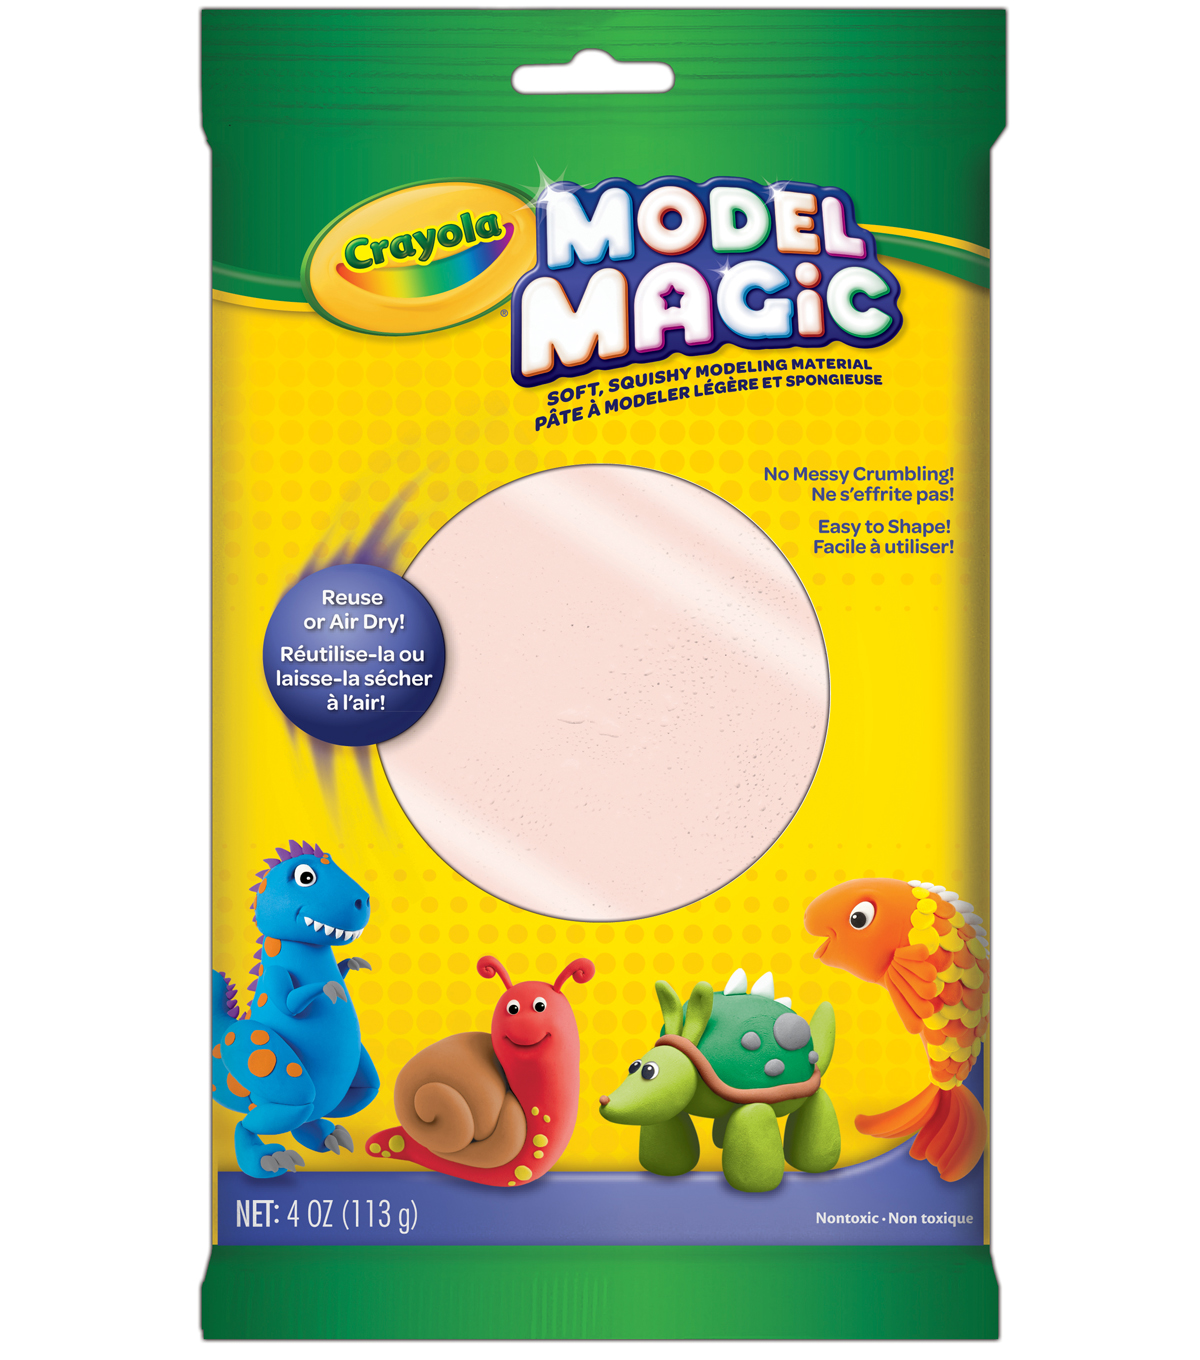 Crayola Model Magic Modeling Clay, Bisque